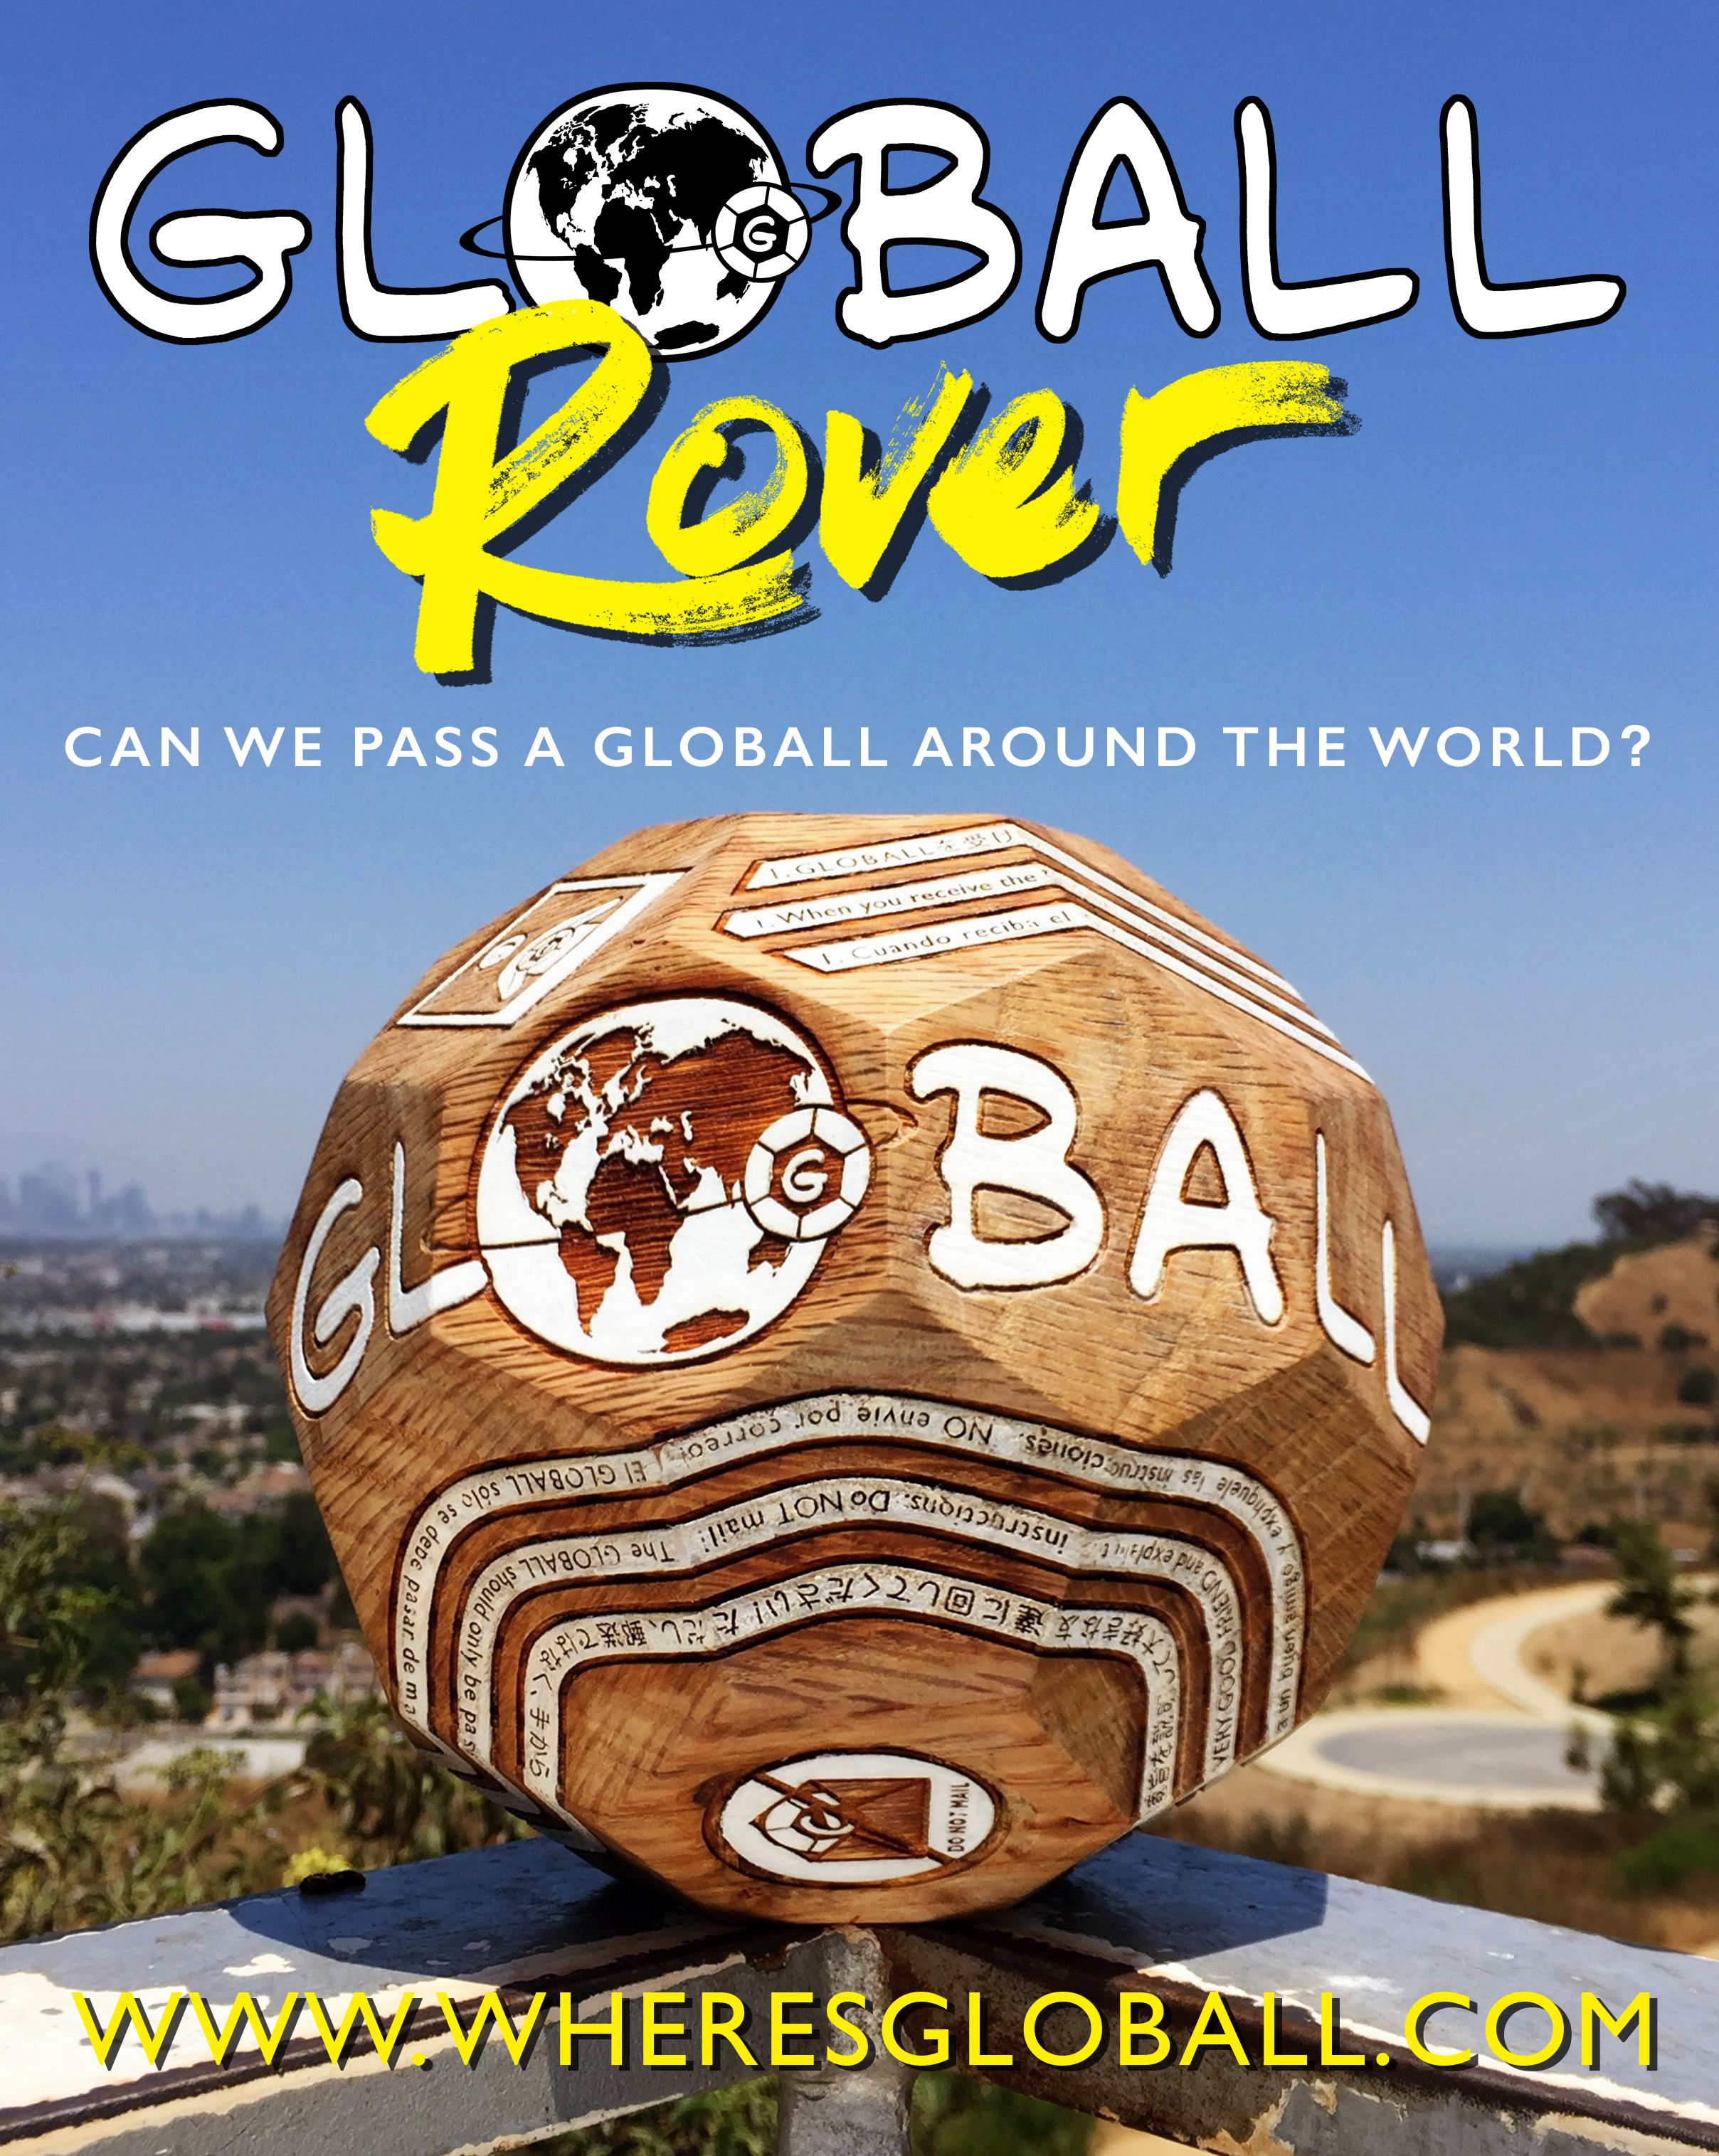 WHAT IS GLOBALL ROVER? - GLOBALL Rover is the trial run. The test pilot. The pioneer. It's the first GLOBALL to go out into the world and see if we can get enough momentum, connect enough people and raise enough funds to make the GLOBALL project, with all seven balls, a reality. GLOBALL Rover needs to explore the world, help us make it so!